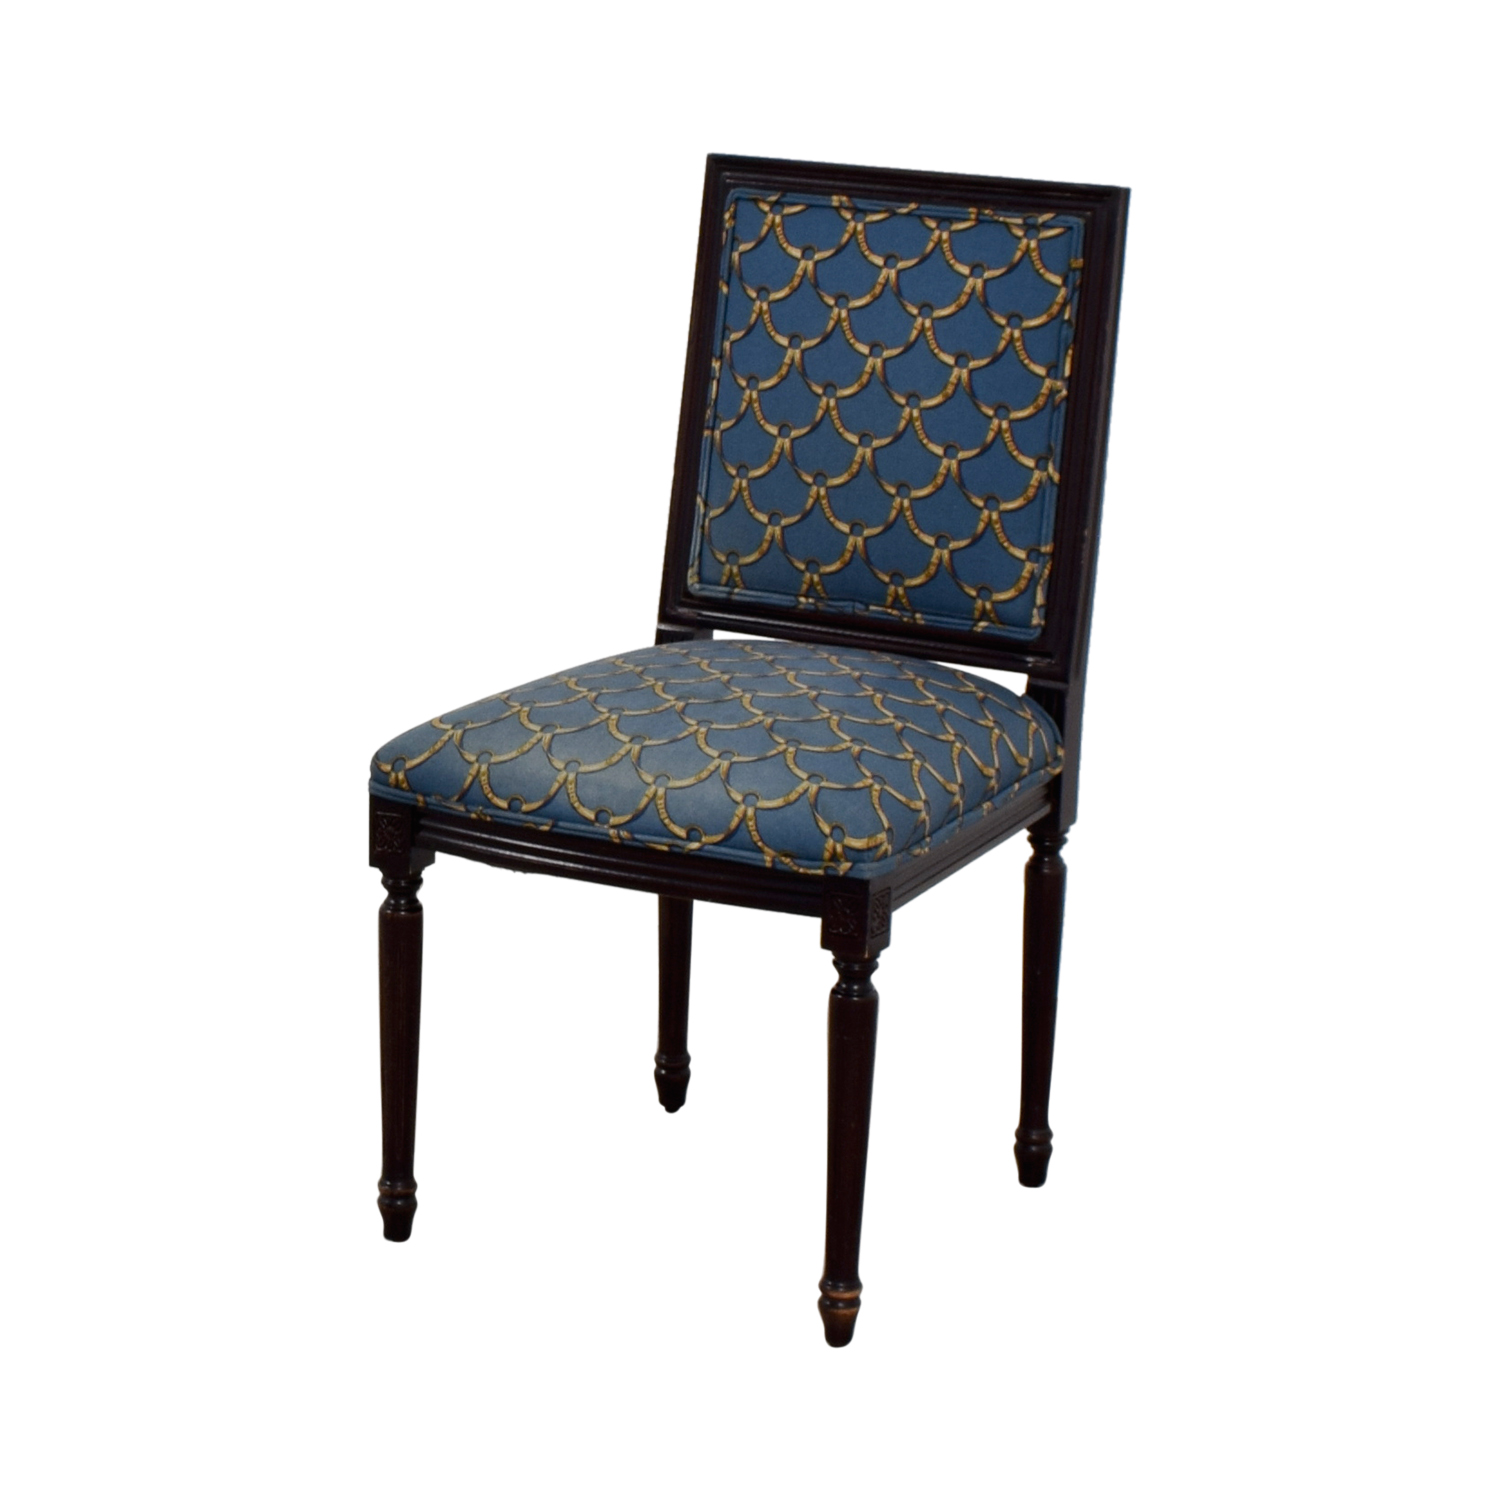 ballard design chairs rustic dining canada 88 off designs blue and gold